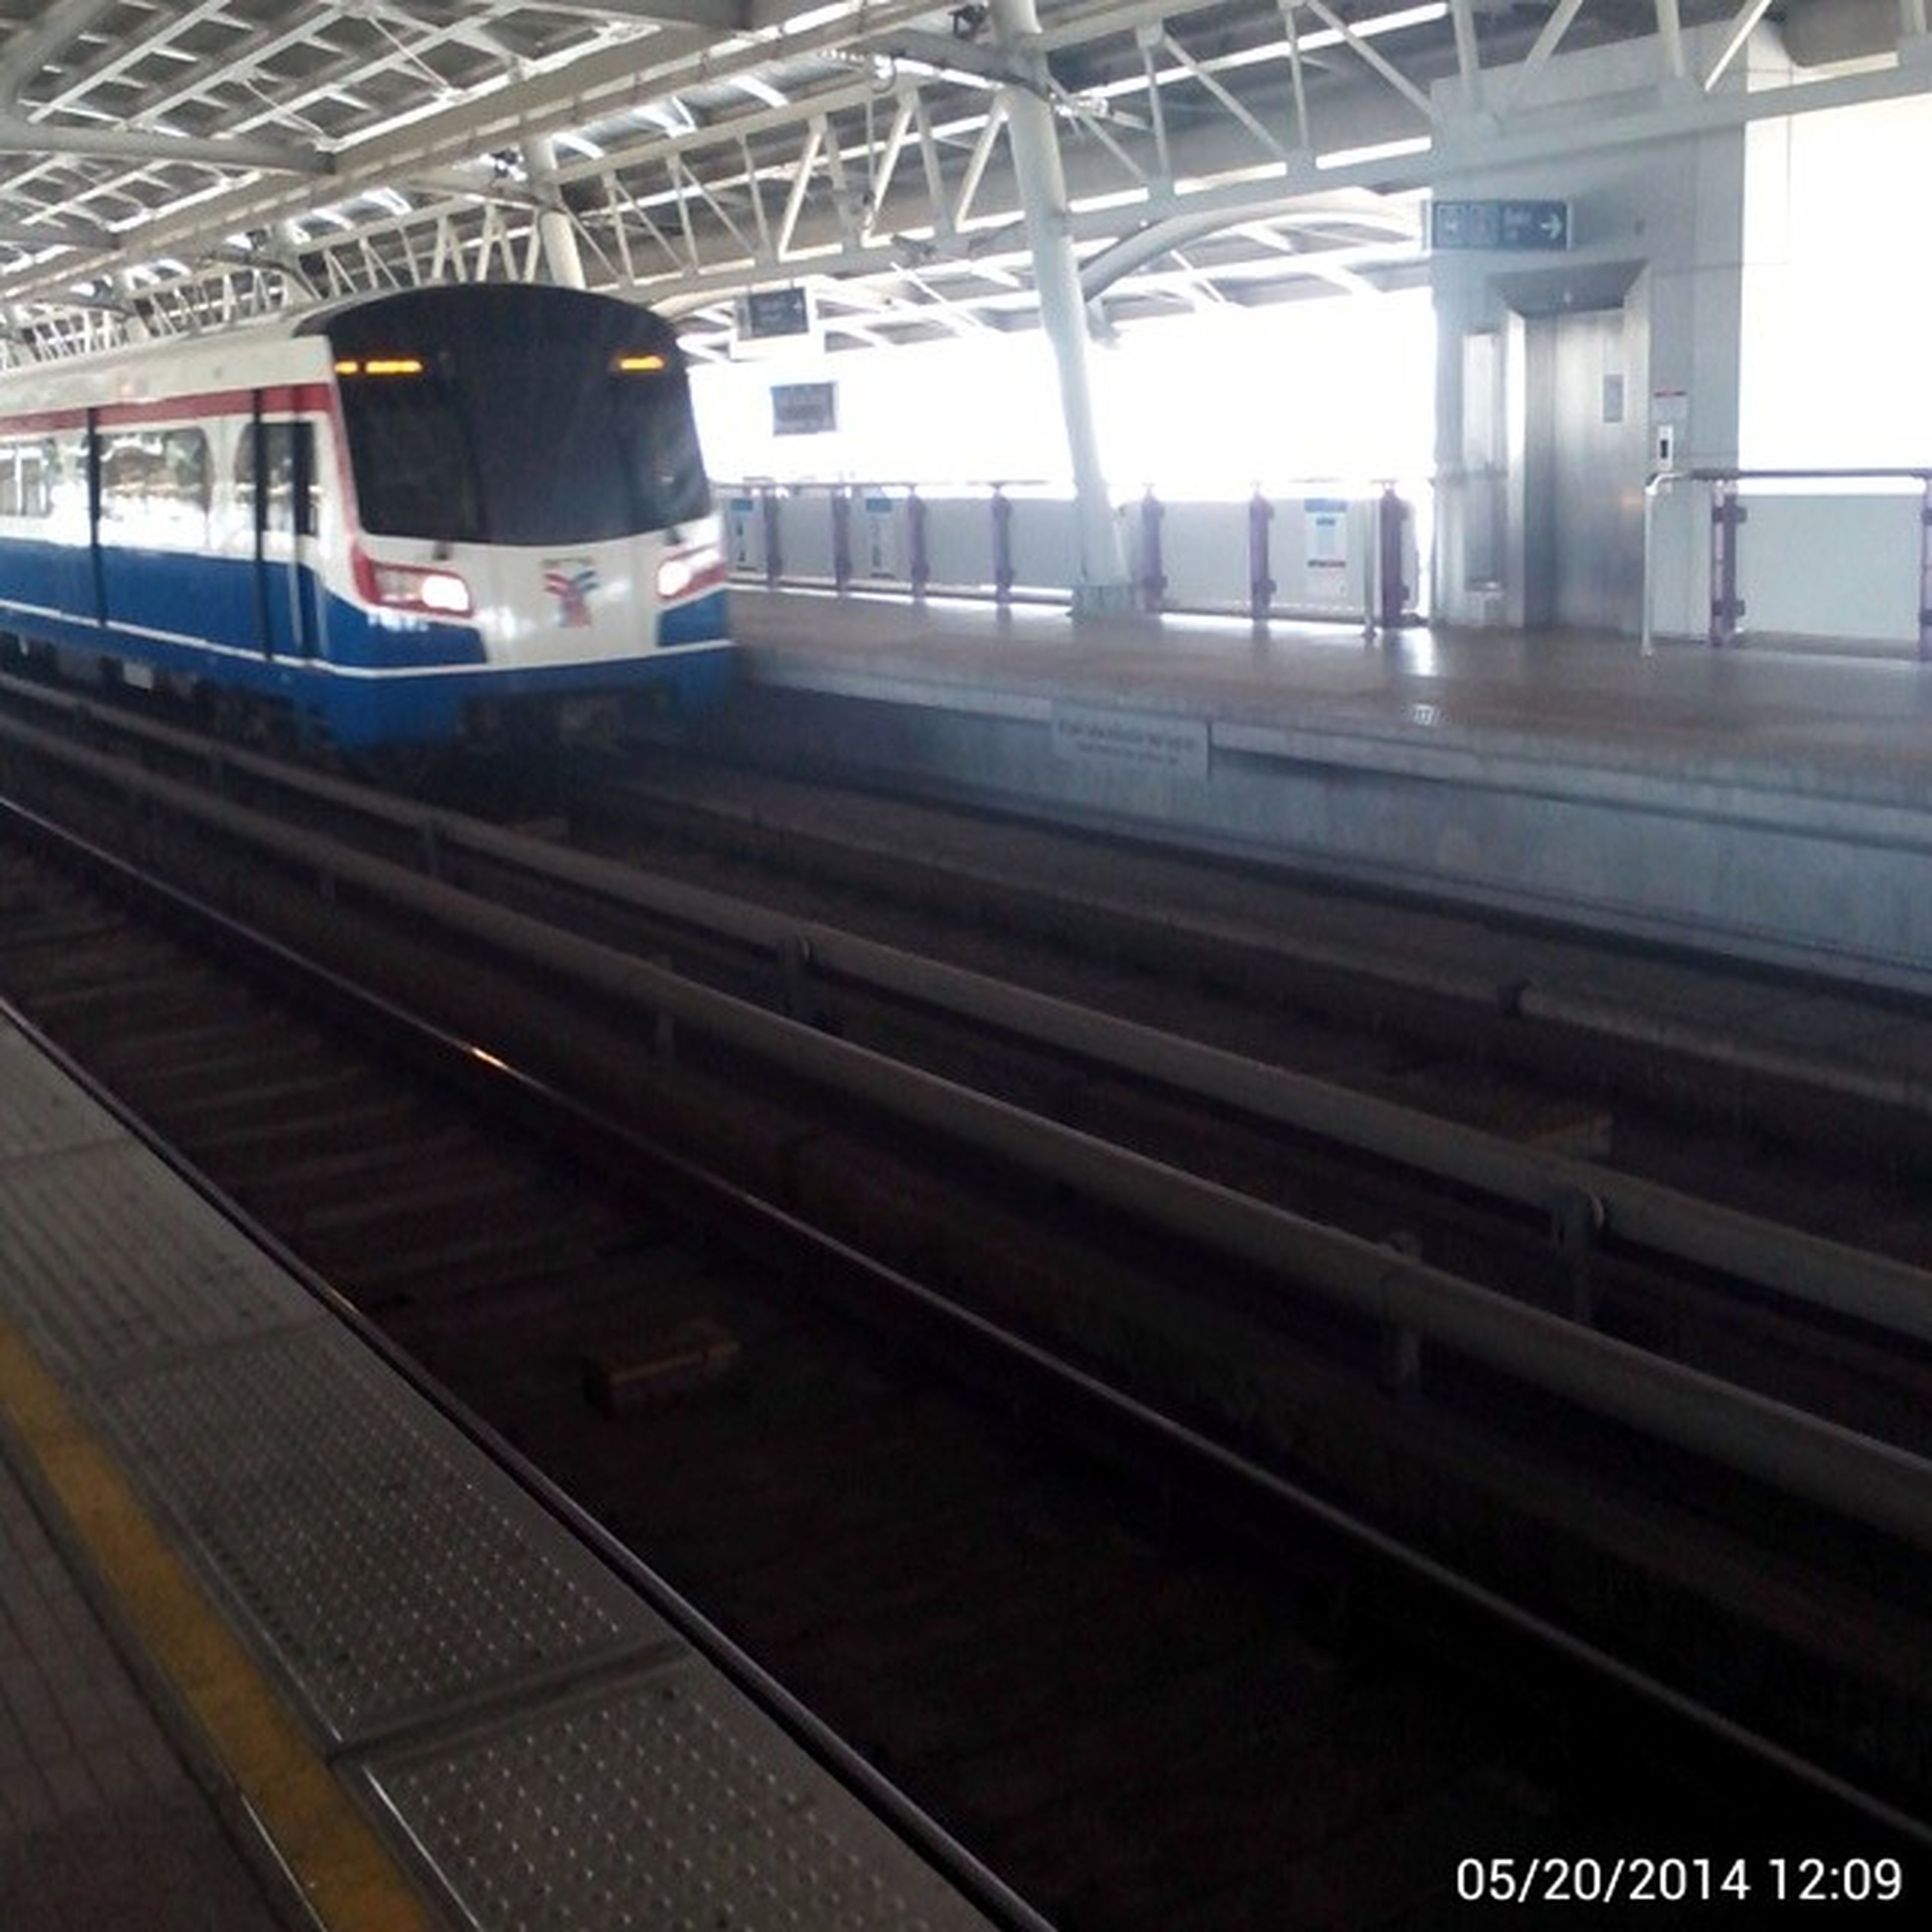 railroad track, rail transportation, public transportation, transportation, railroad station platform, railroad station, train - vehicle, mode of transport, passenger train, travel, train, public transport, indoors, railway station, built structure, journey, railway track, incidental people, architecture, station